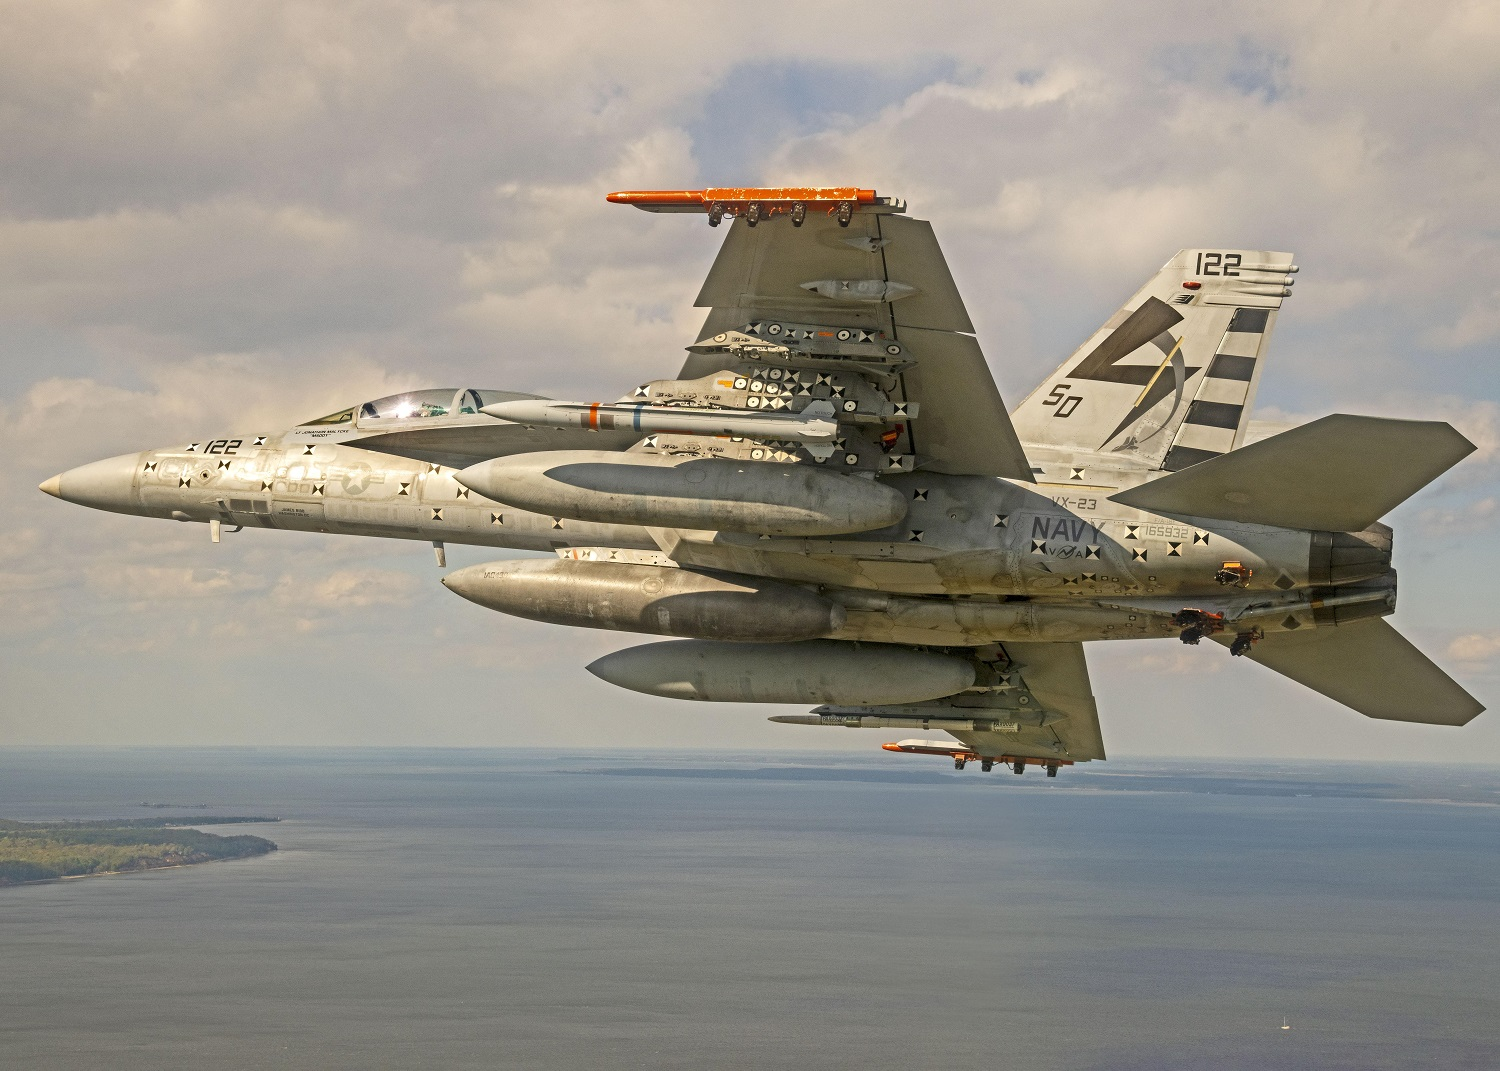 US Navy Completes F/A-18 Flight with Advanced Anti-Radiation Guided Missile - Extended Range (AARGM-ER)